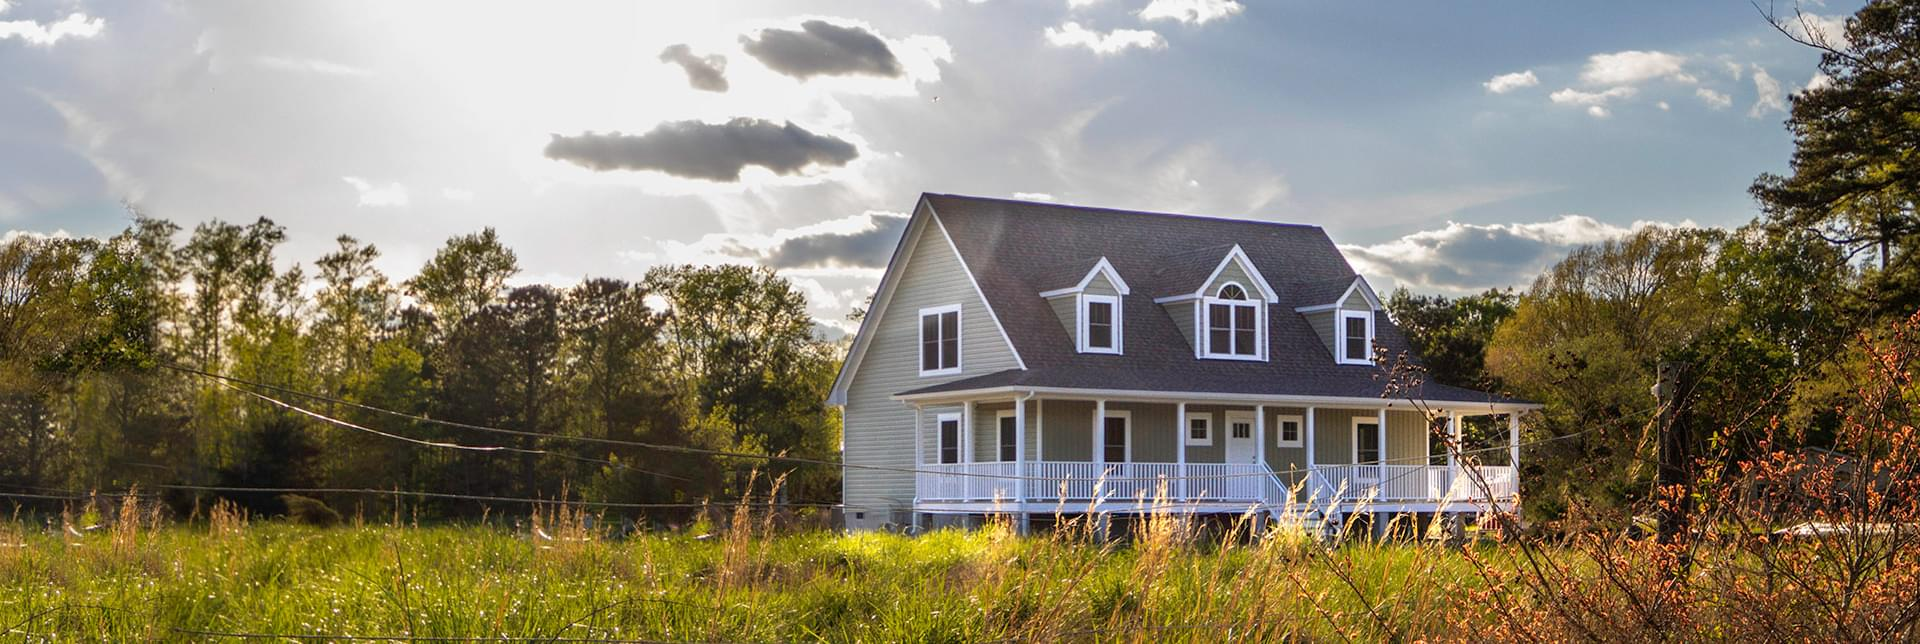 New Homes in Prince William County VA